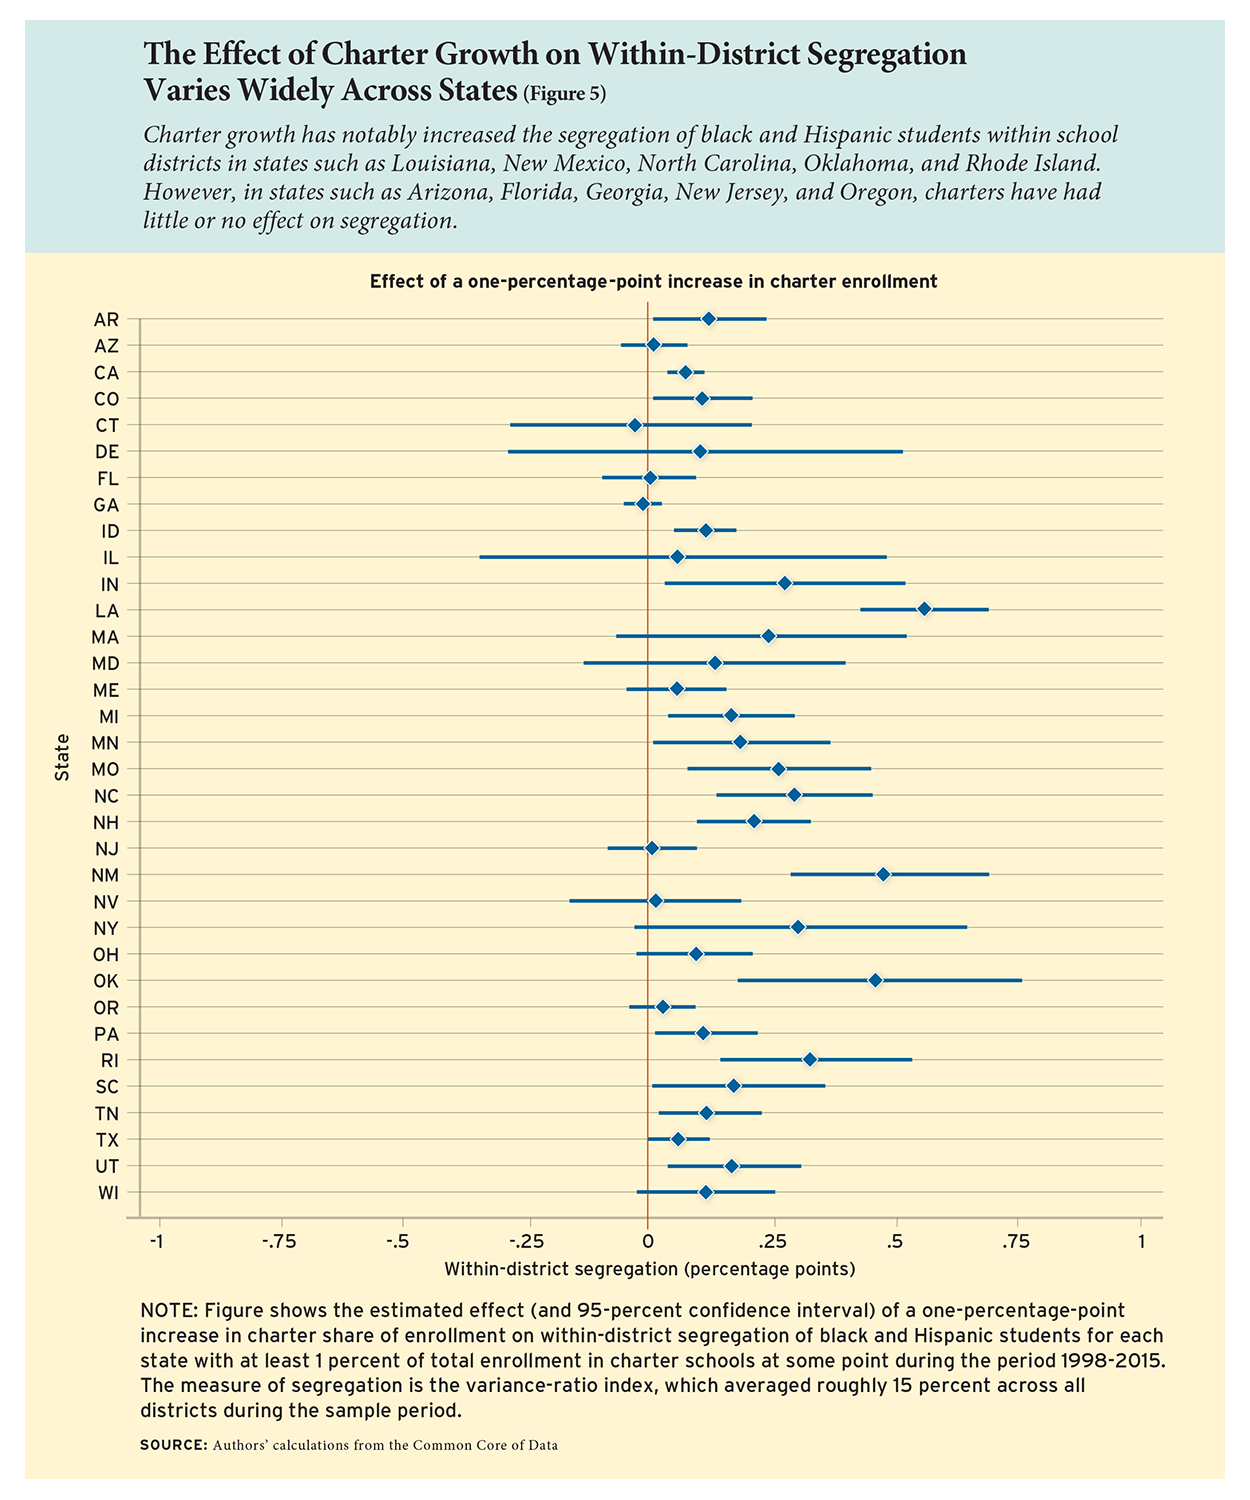 The Effect of Charter Growth on Within-District Segregation Varies Widely Across States (Figure 5)